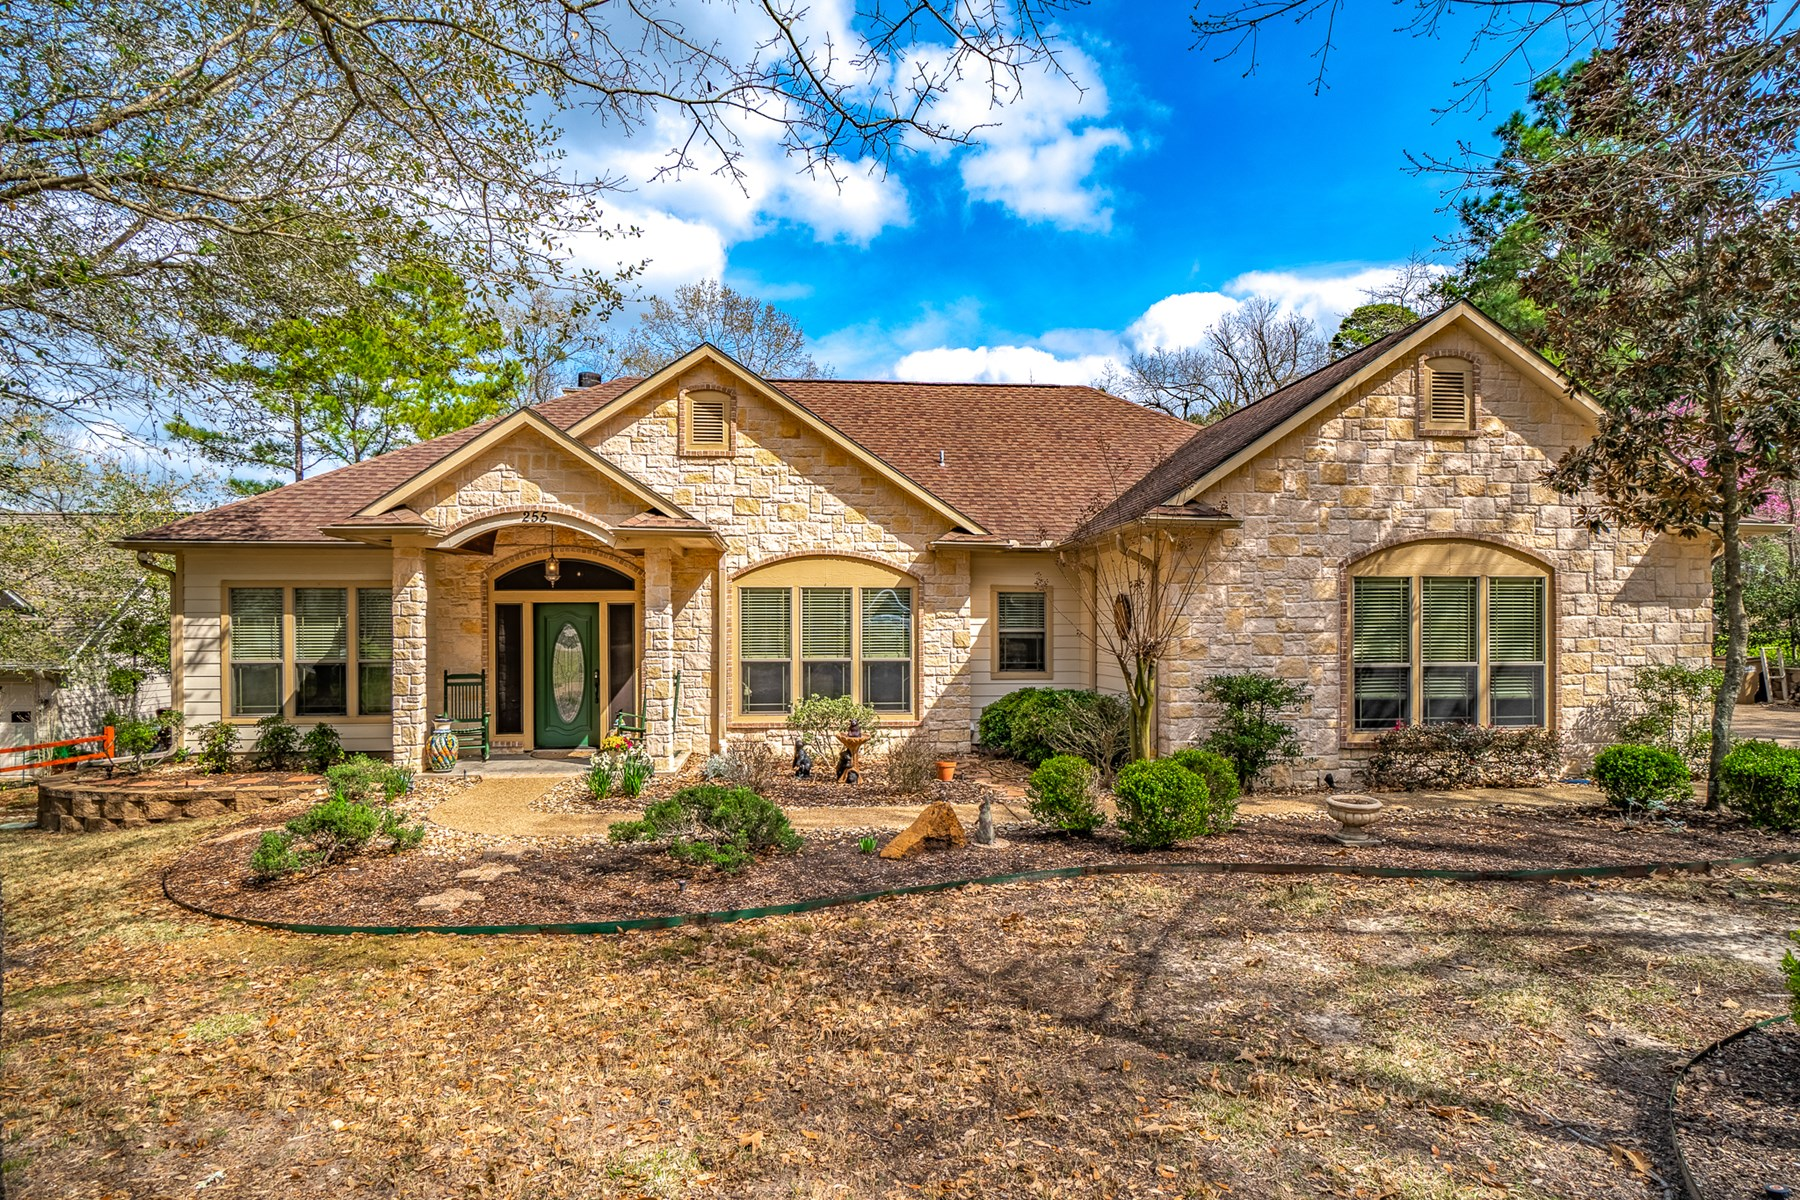 GOLF COURSE HOME HOLLY LAKE RANCH TEXAS - EAST OF DALLAS